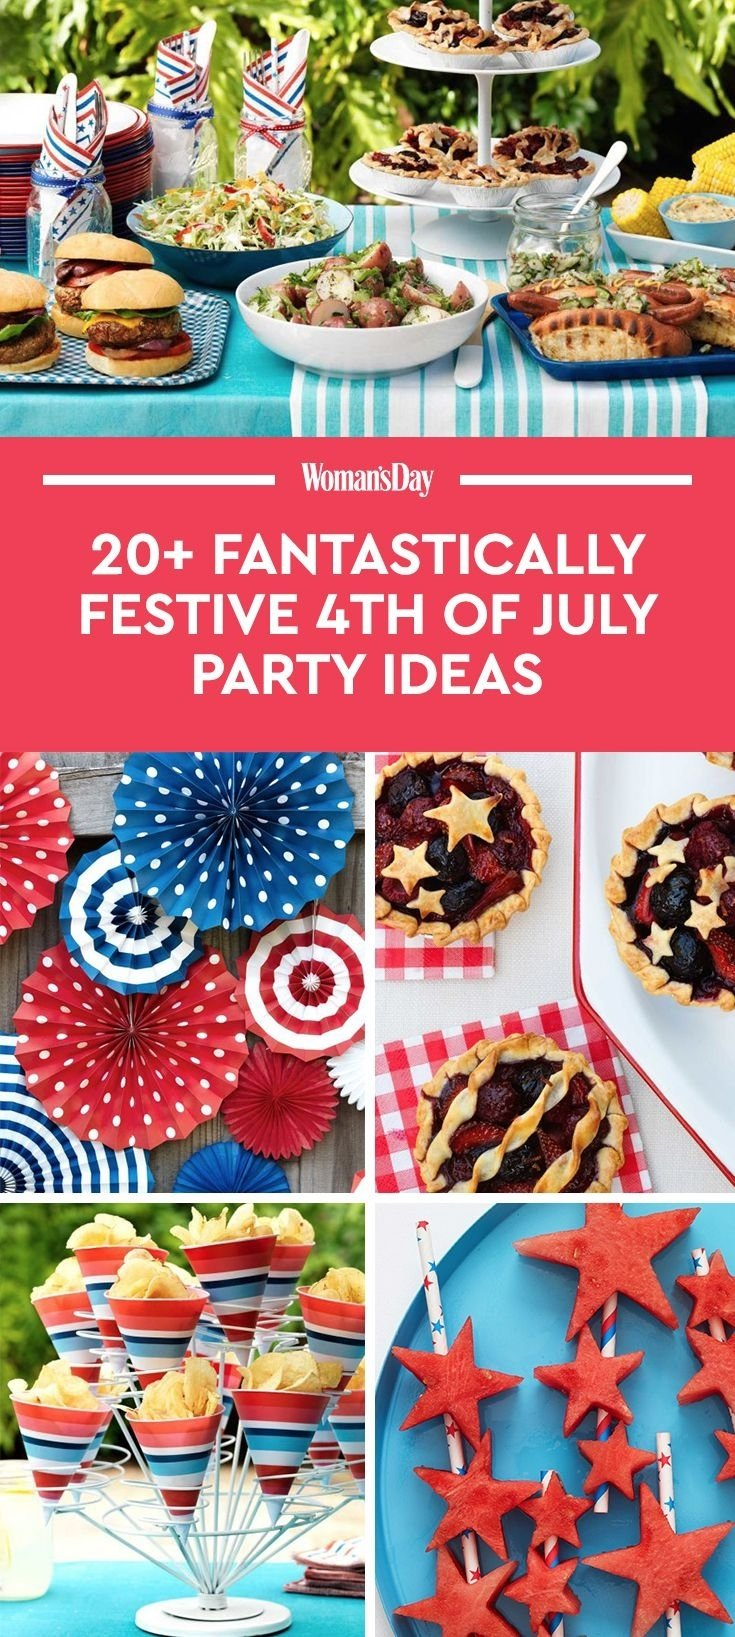 10 Gorgeous Ideas For 4Th Of July Party 24 4th of july party ideas food decor for a fourth of july cookout 6